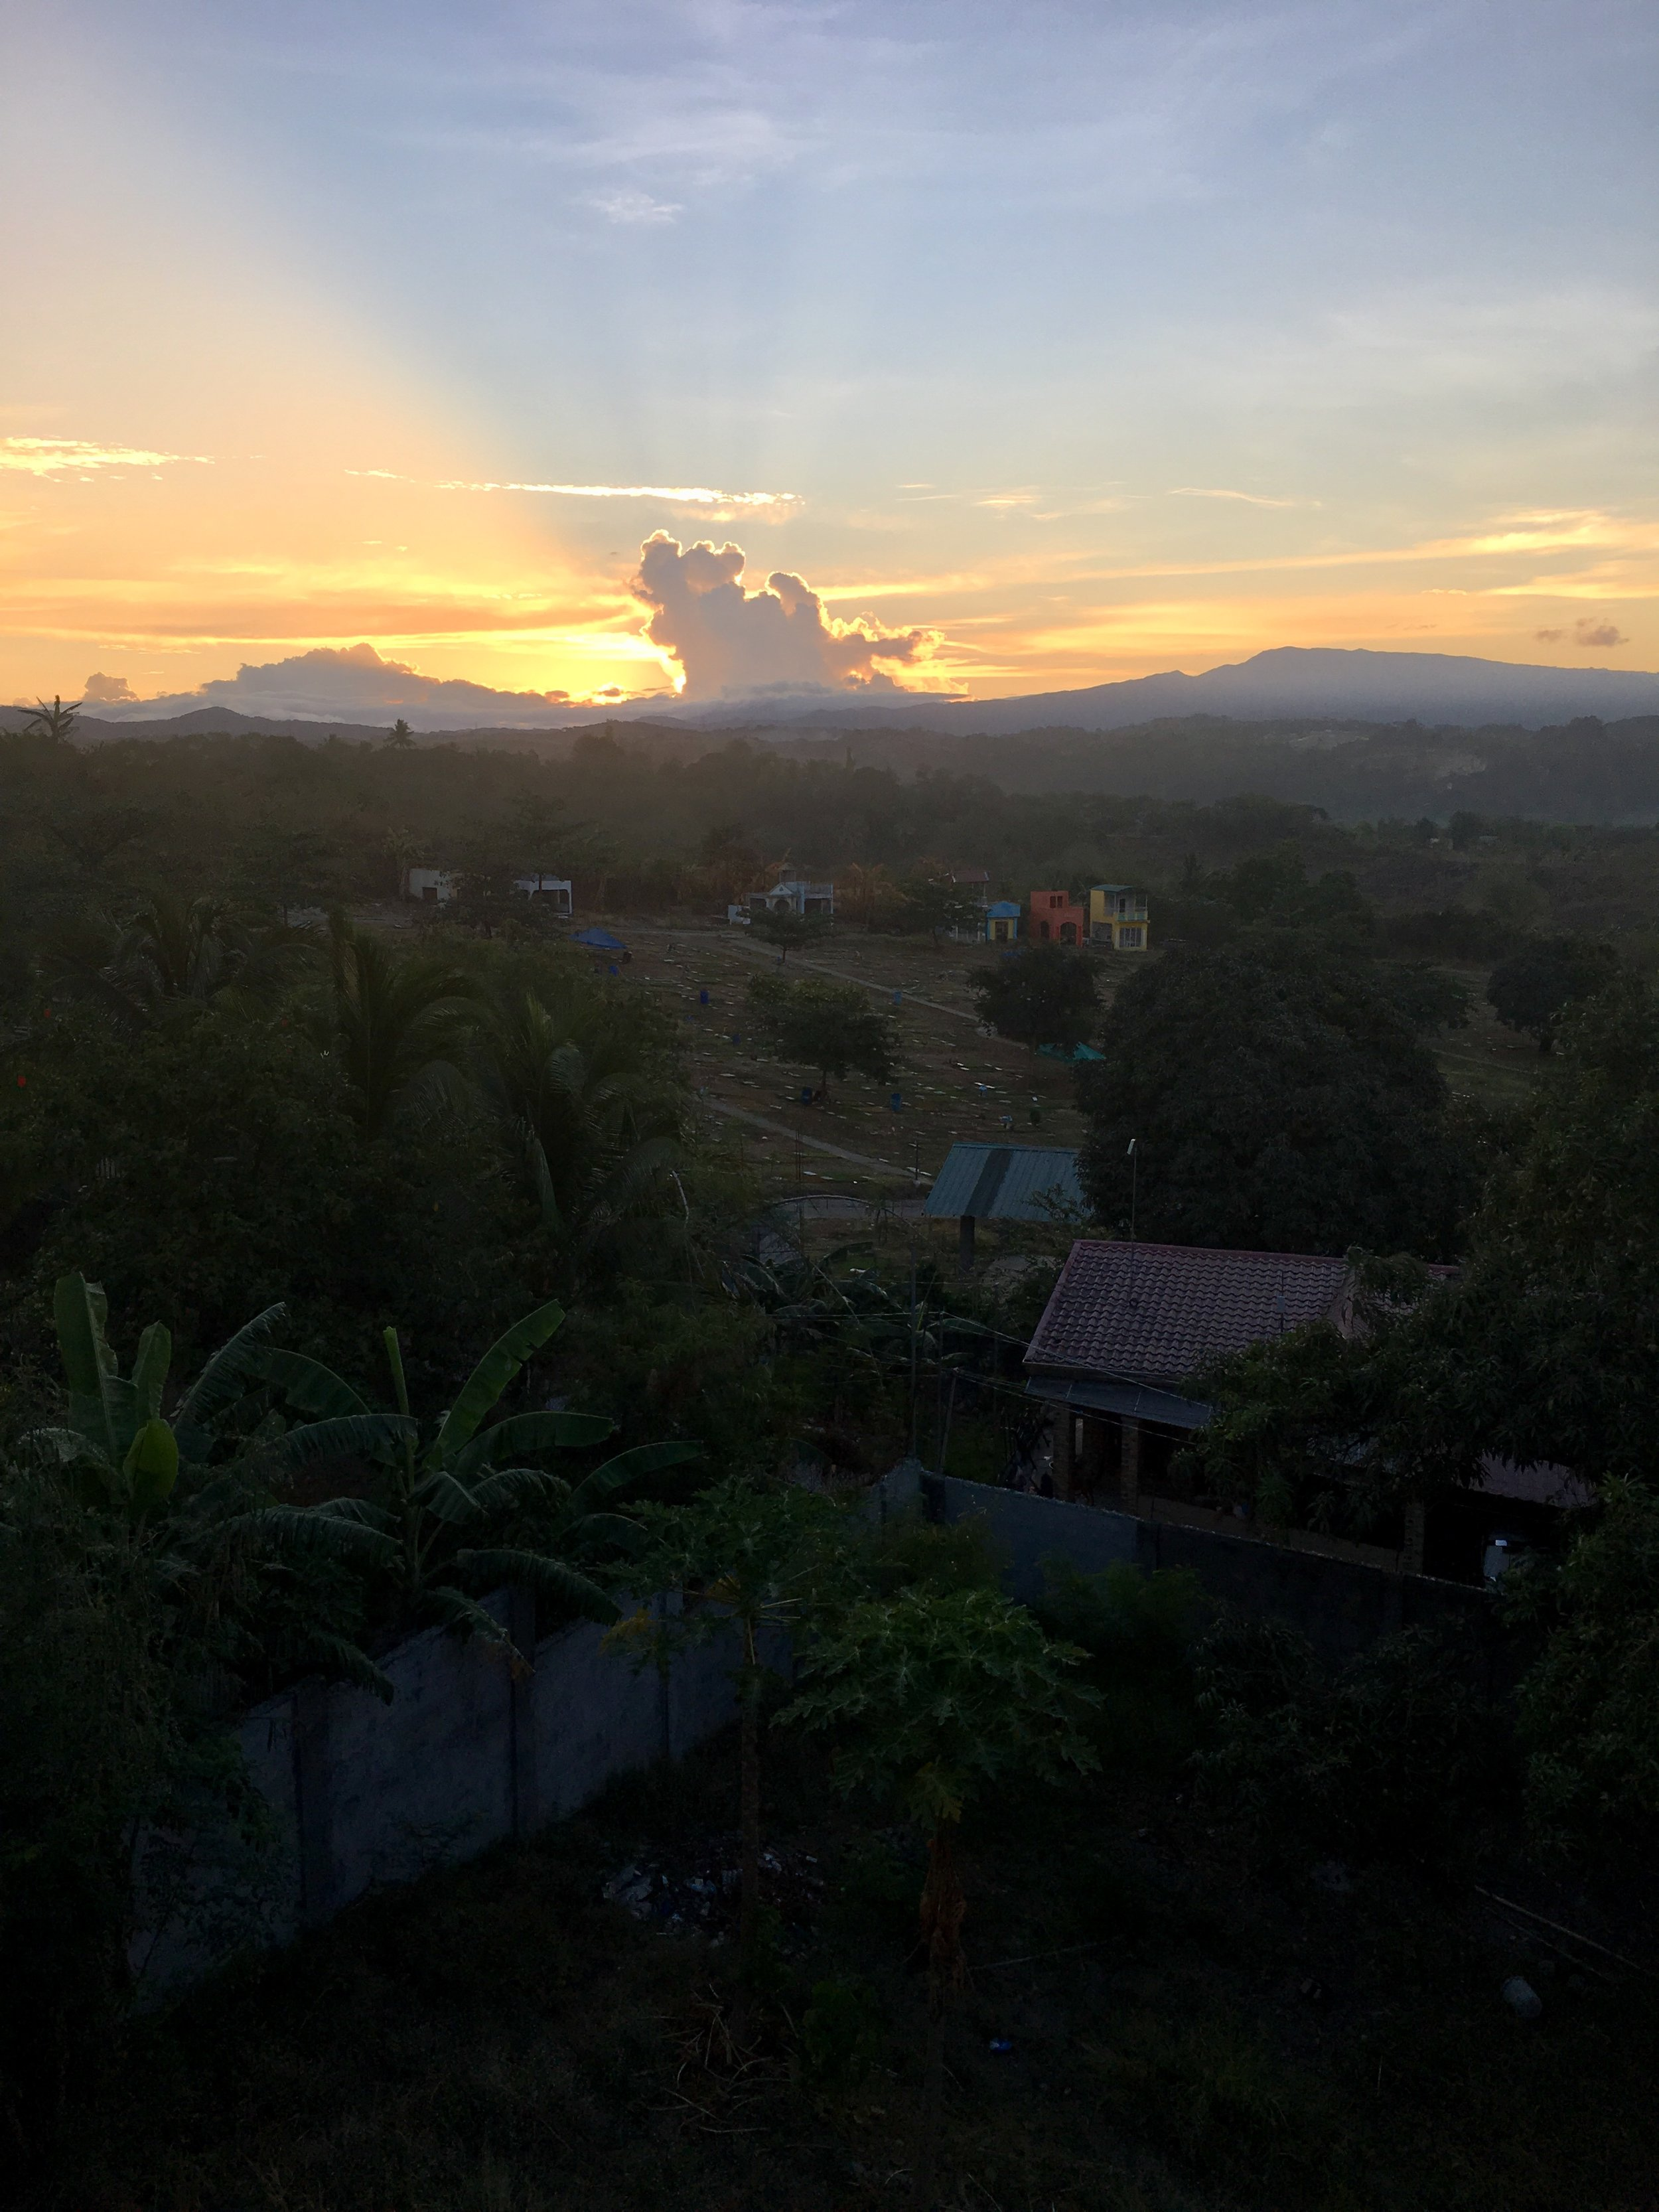 Sunrise accompanied by sounds of birds, roosters and engines starting for morning commute.